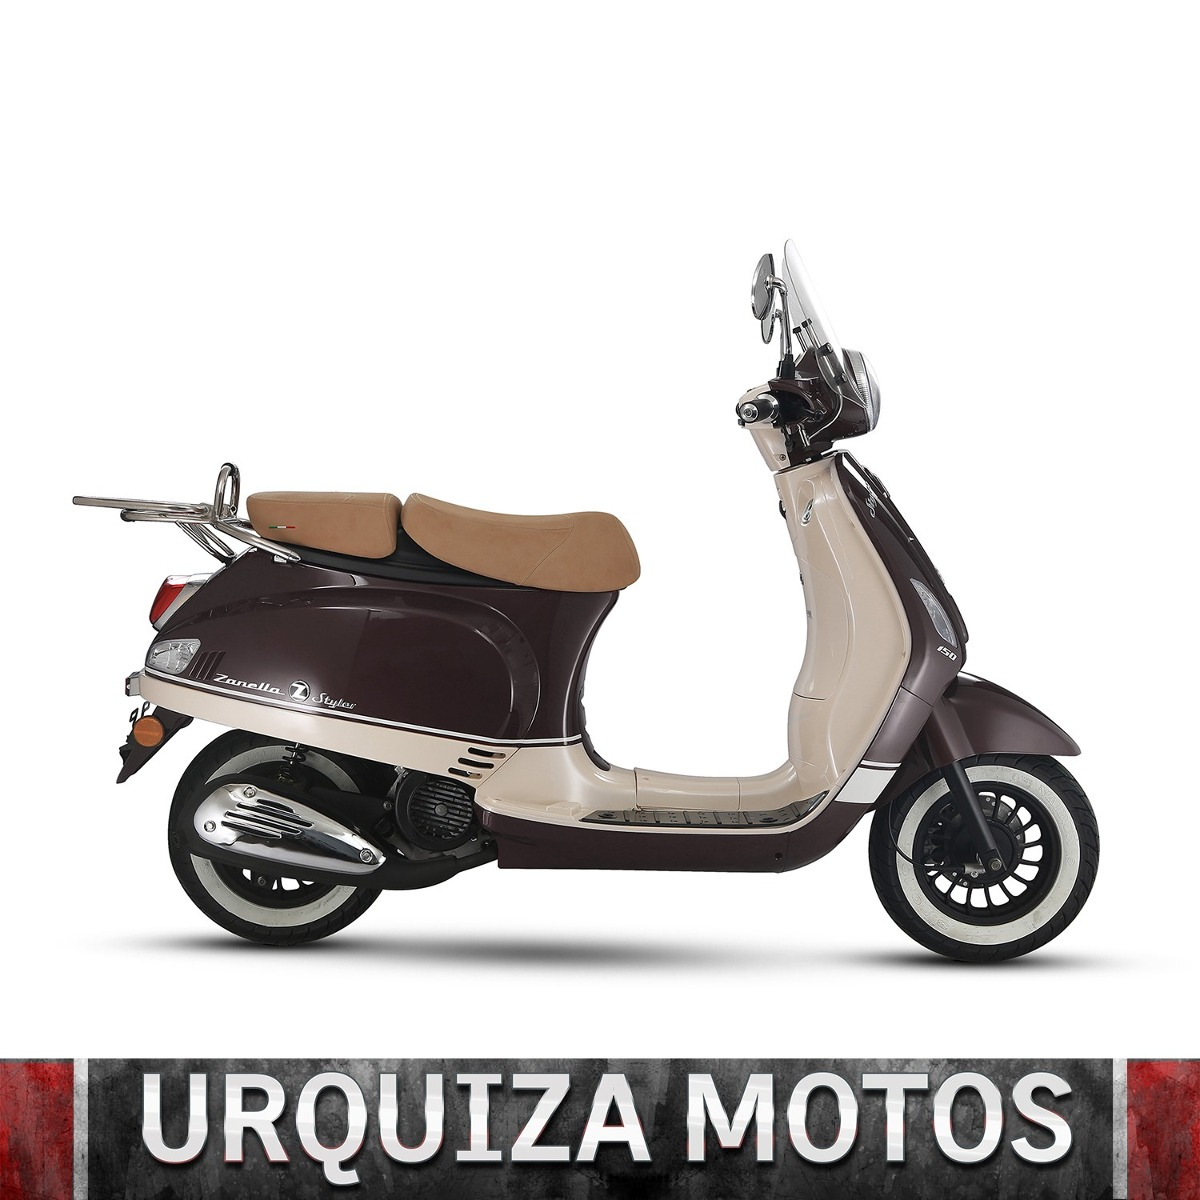 Yamaha Razz Scooter 49cc Wiring Diagram 1996 Sh 50 Pics Specs And Information